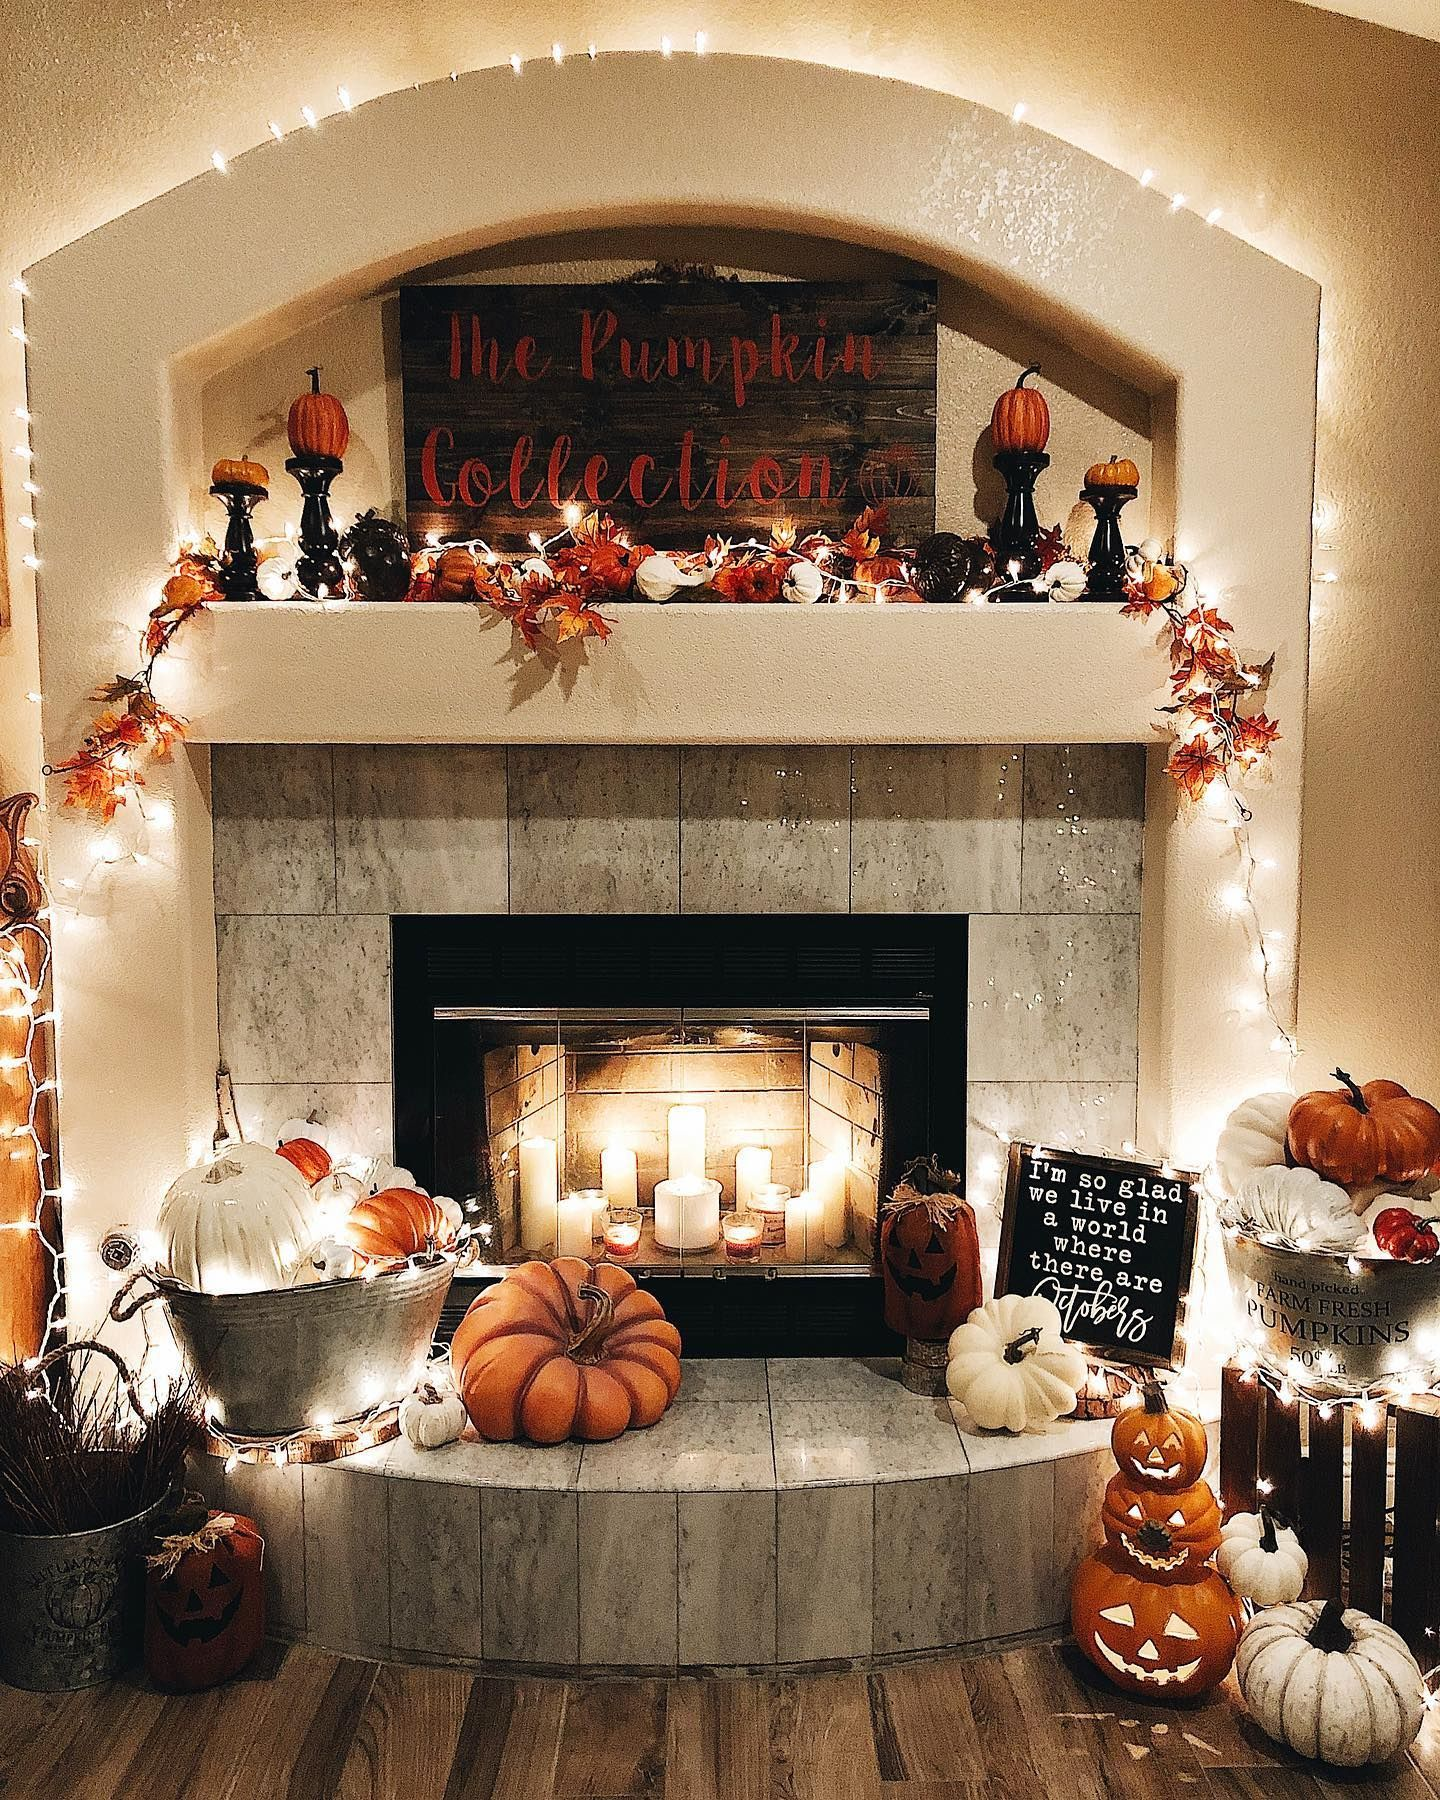 Halloween Decorations in 2020 Fall decor diy, Fall decor